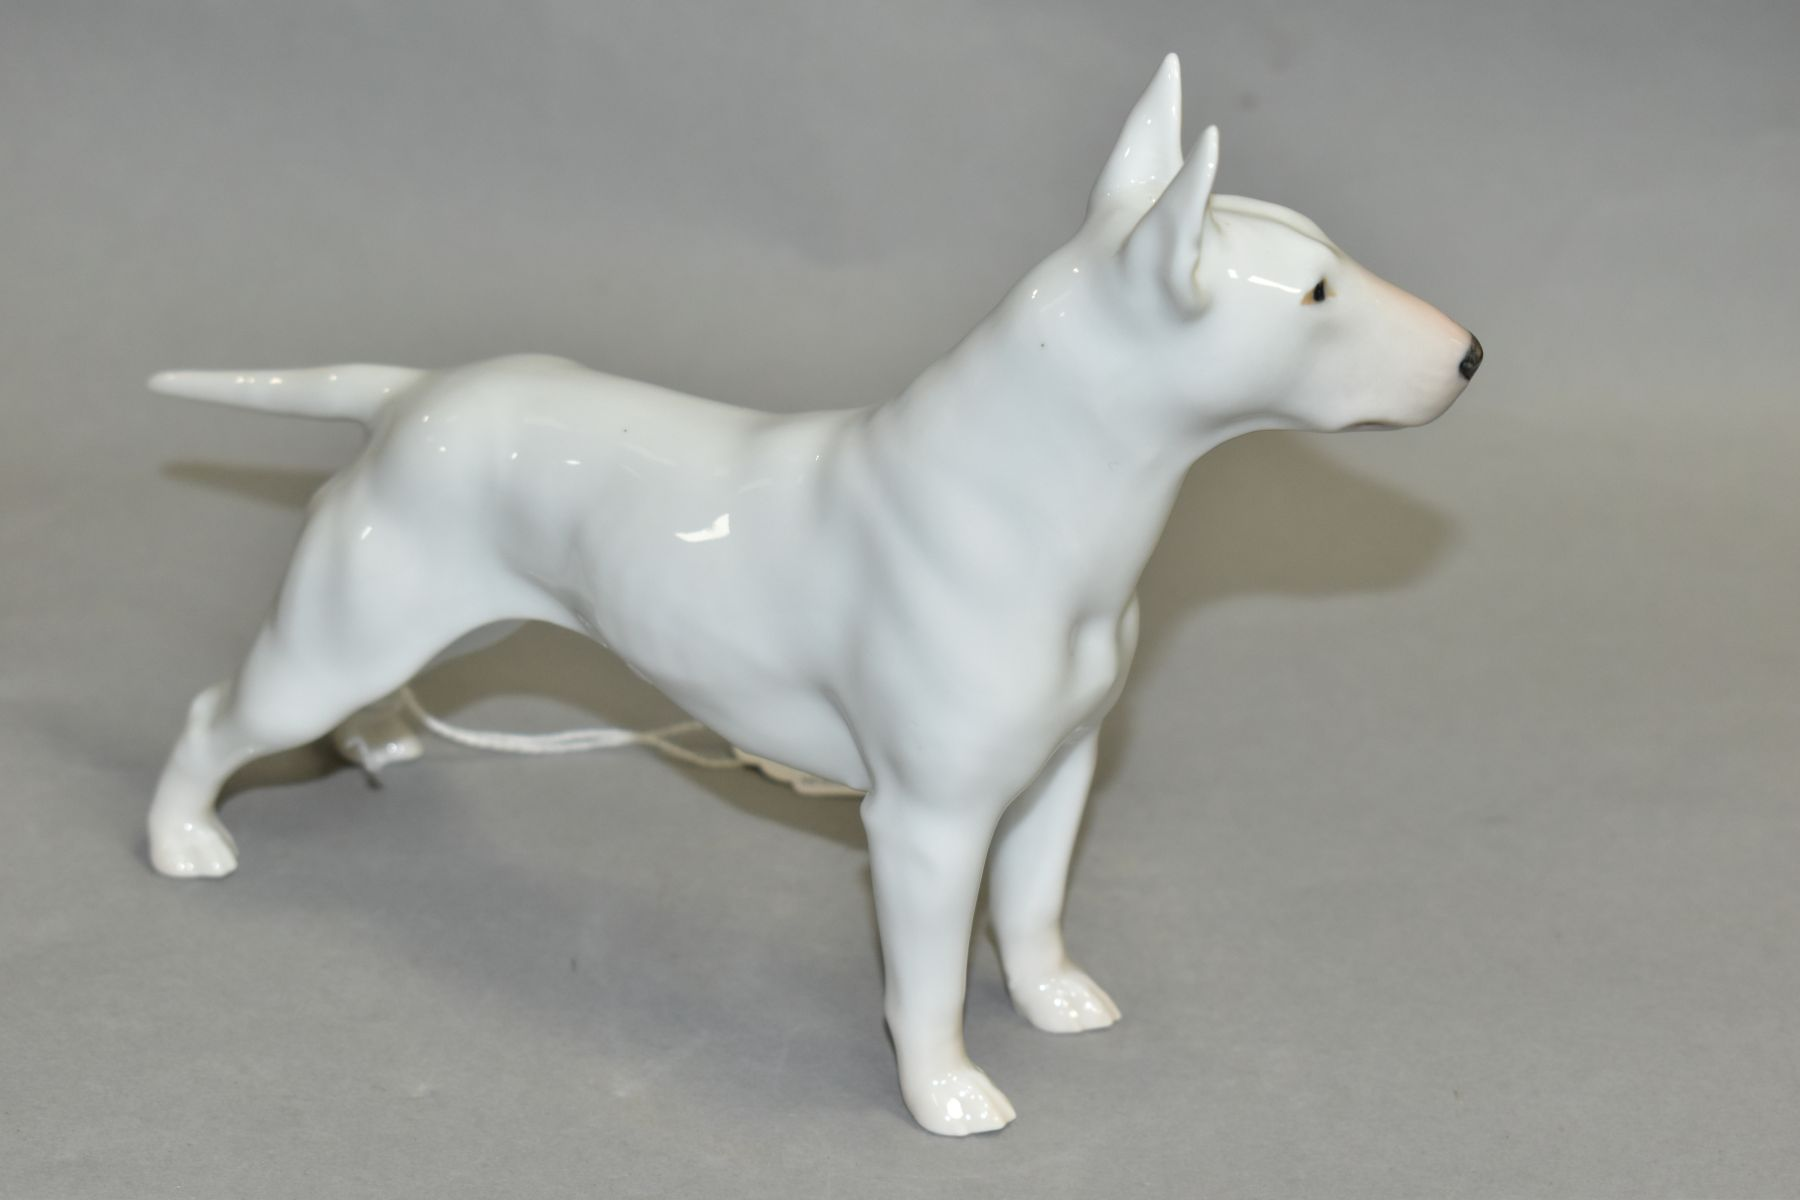 A ROYAL COPENHAGEN BULL TERRIER, white, No 3280, height 14cm x length 20cm (Condition:- appears ok) - Image 2 of 5